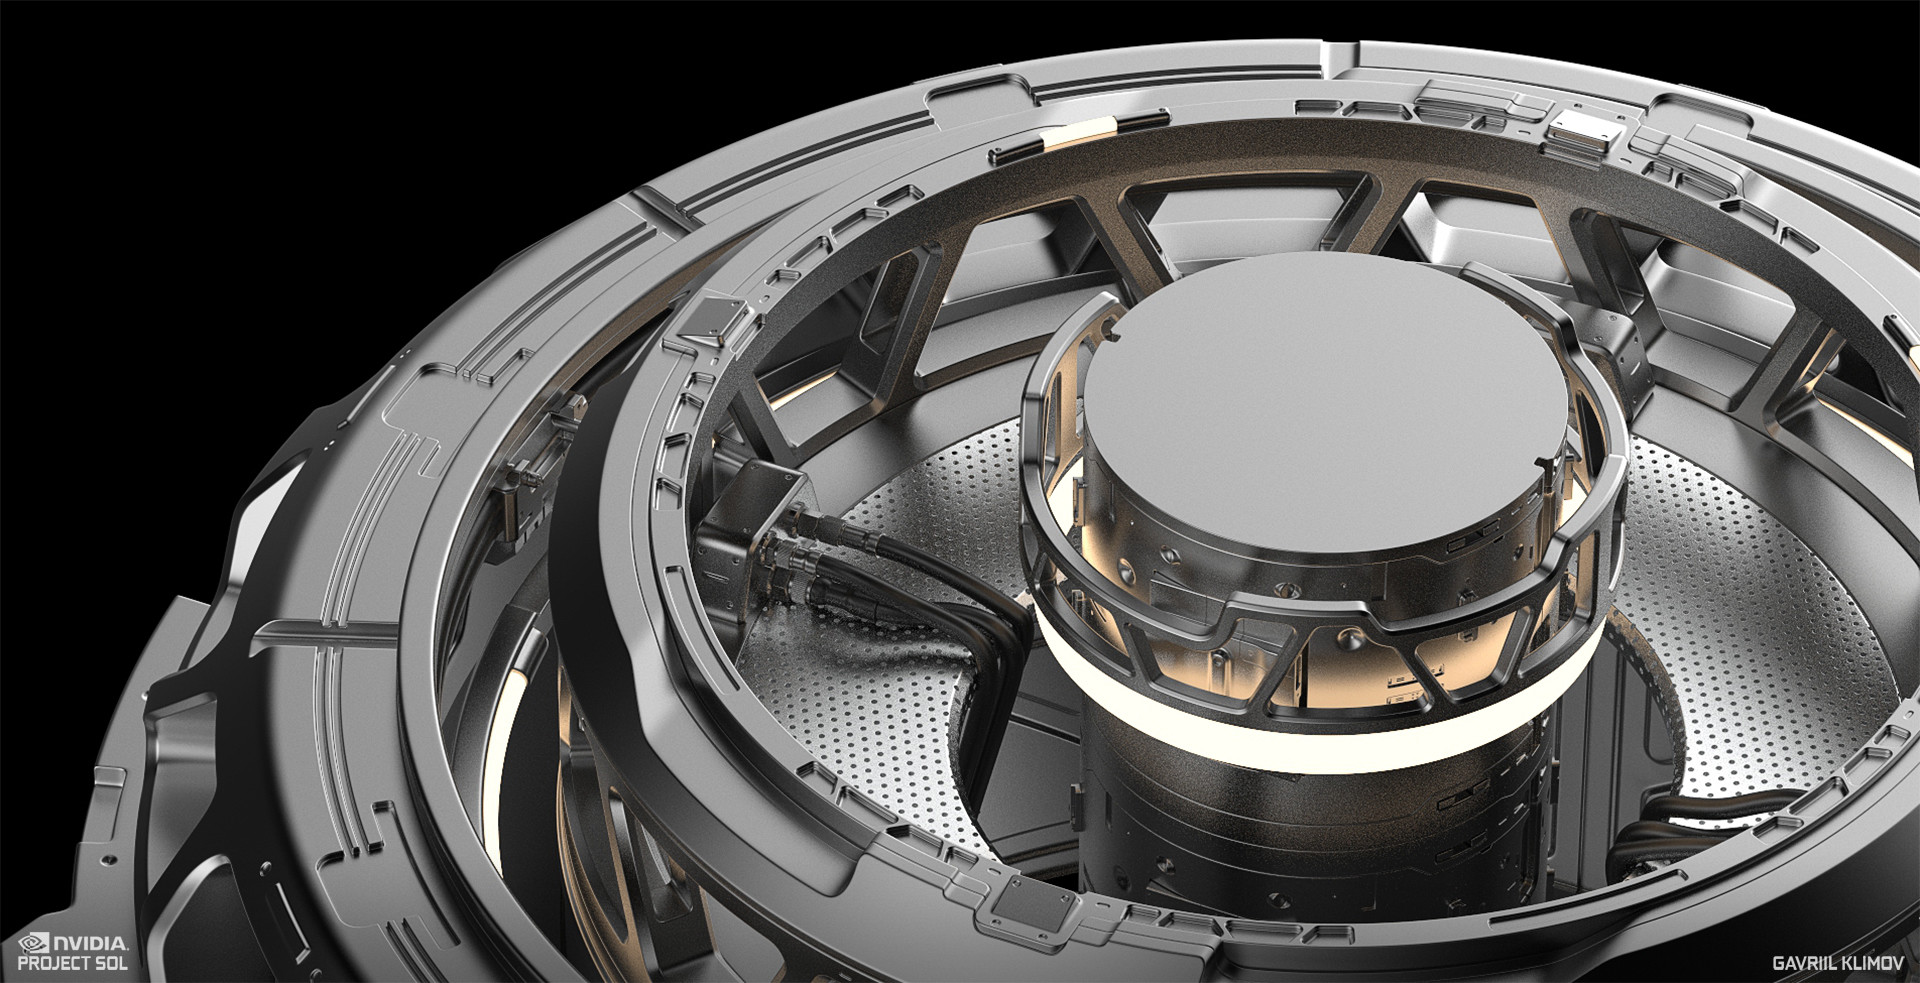 Work in progress render. Showing the inner workings of the middle elevating platform